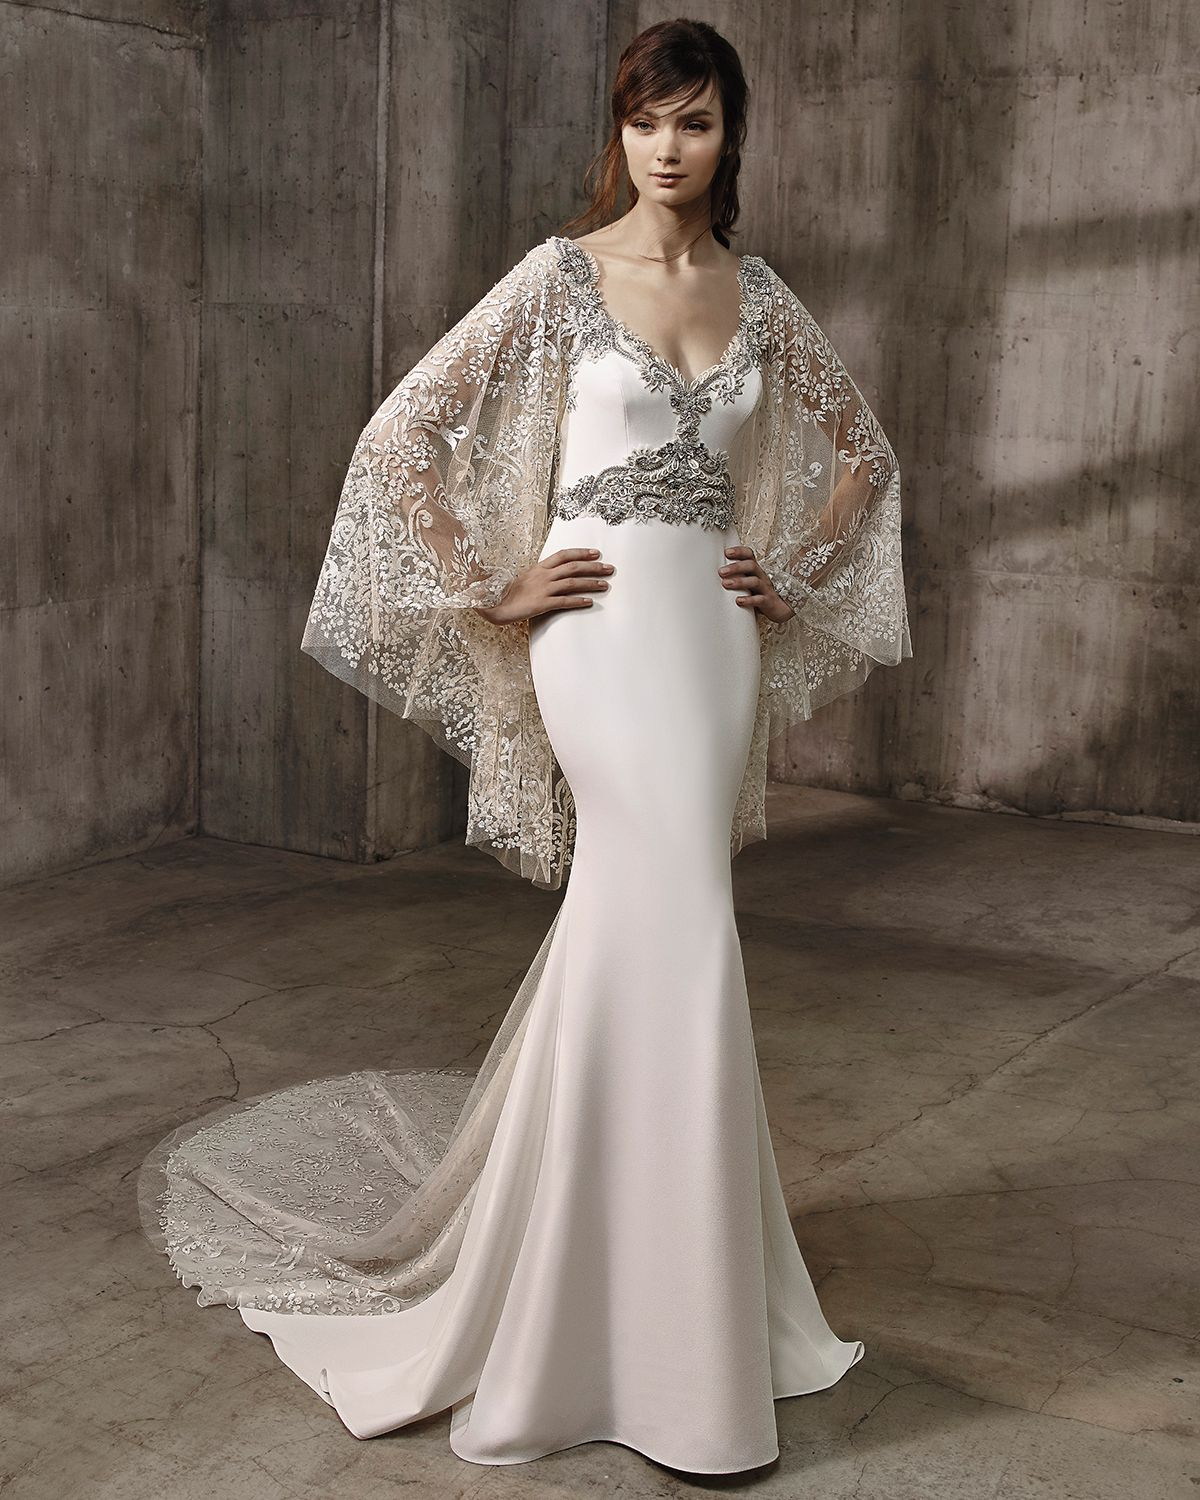 Badgley mischka wedding dress  View the Badgley Mischka Bride Couture  collection of wedding